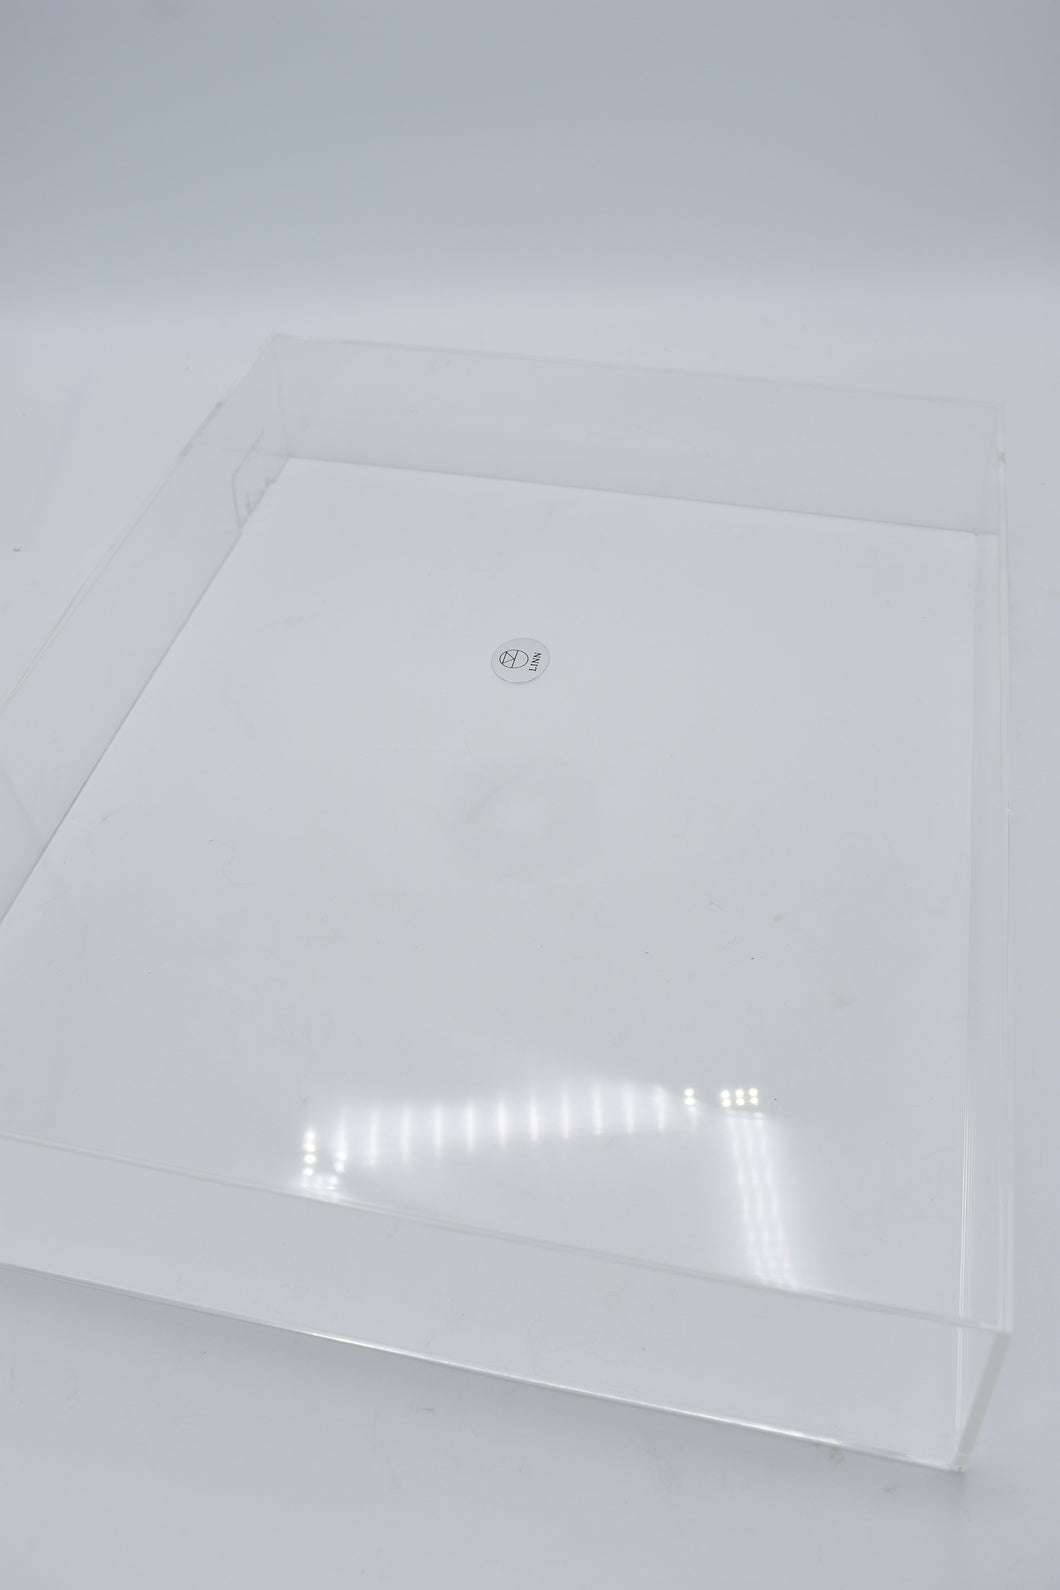 Linn LP12 Clear Lid (2018) (Preowned, Ref 000940)